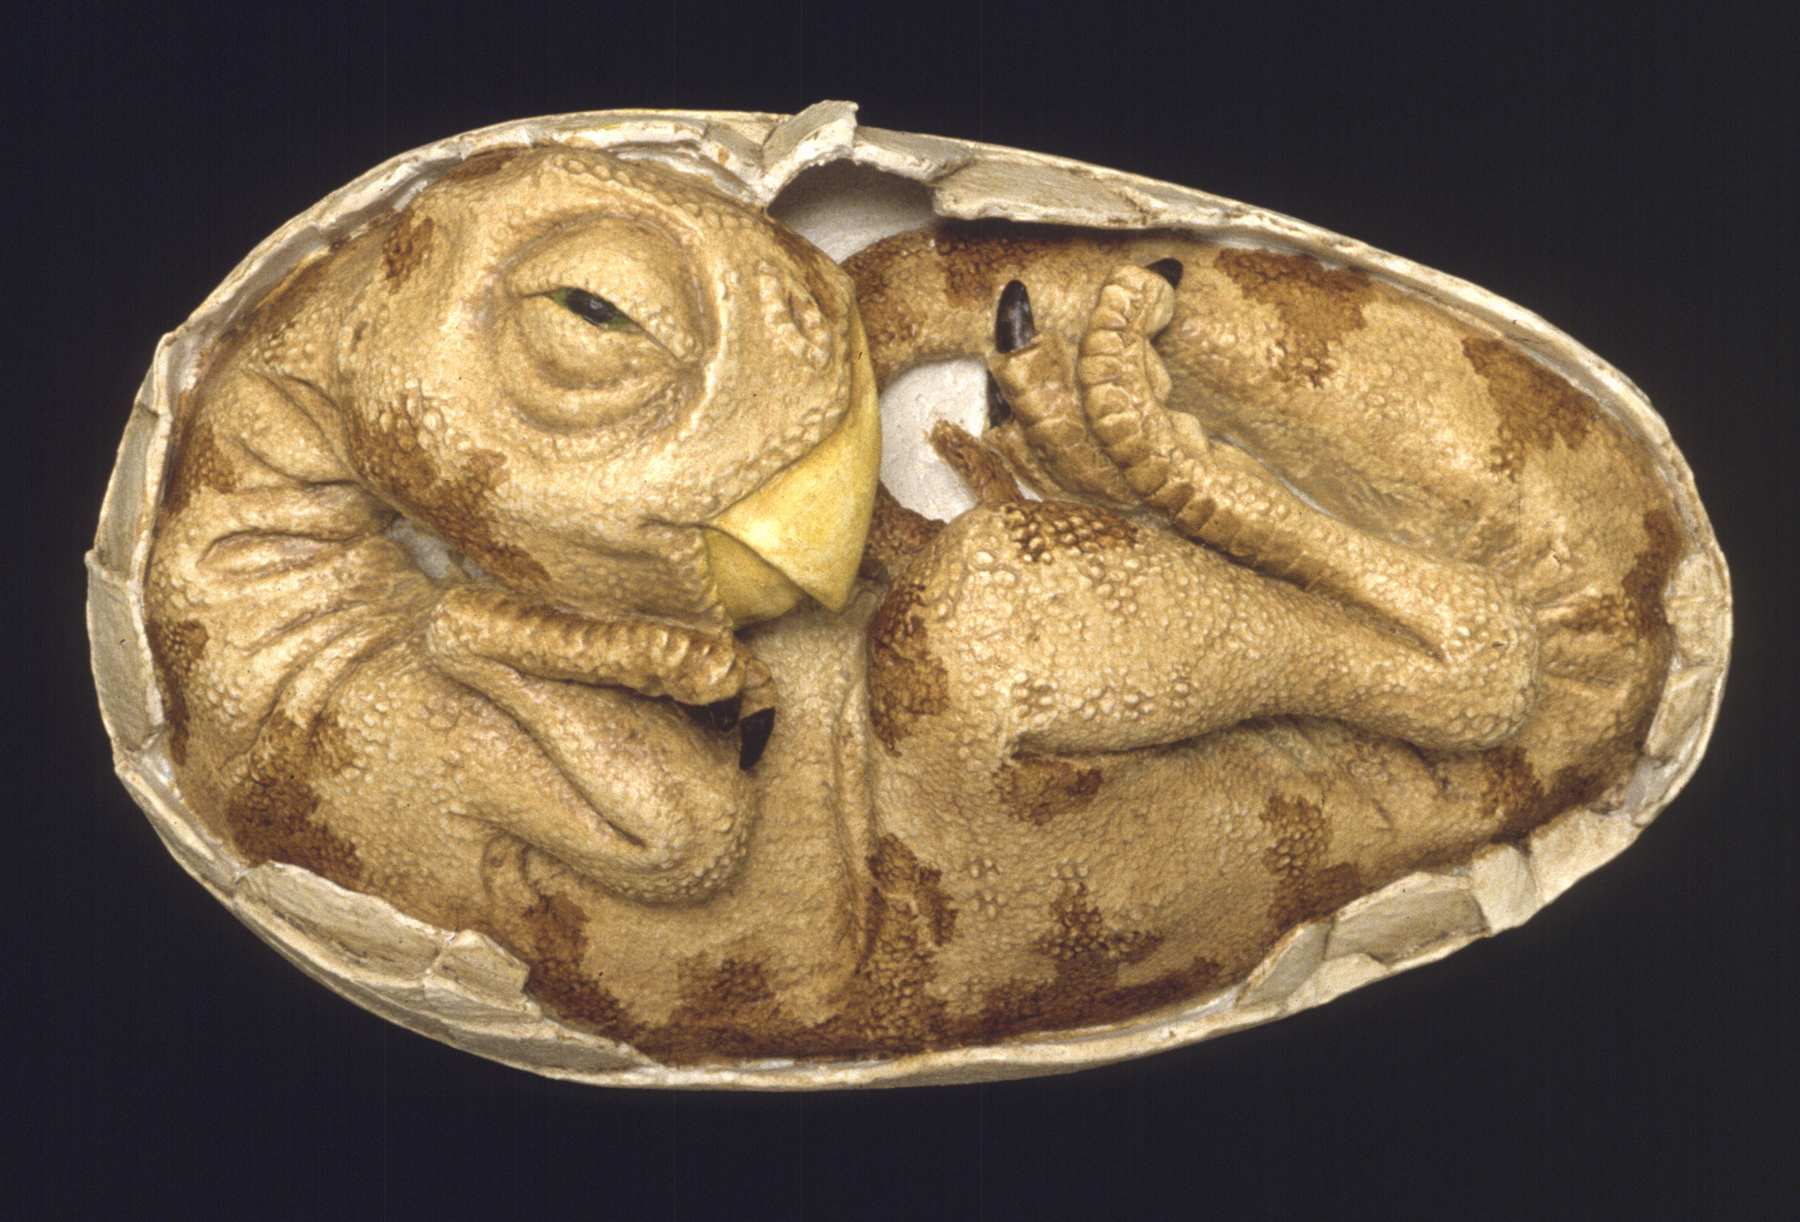 Oviraptor embryo sculpture